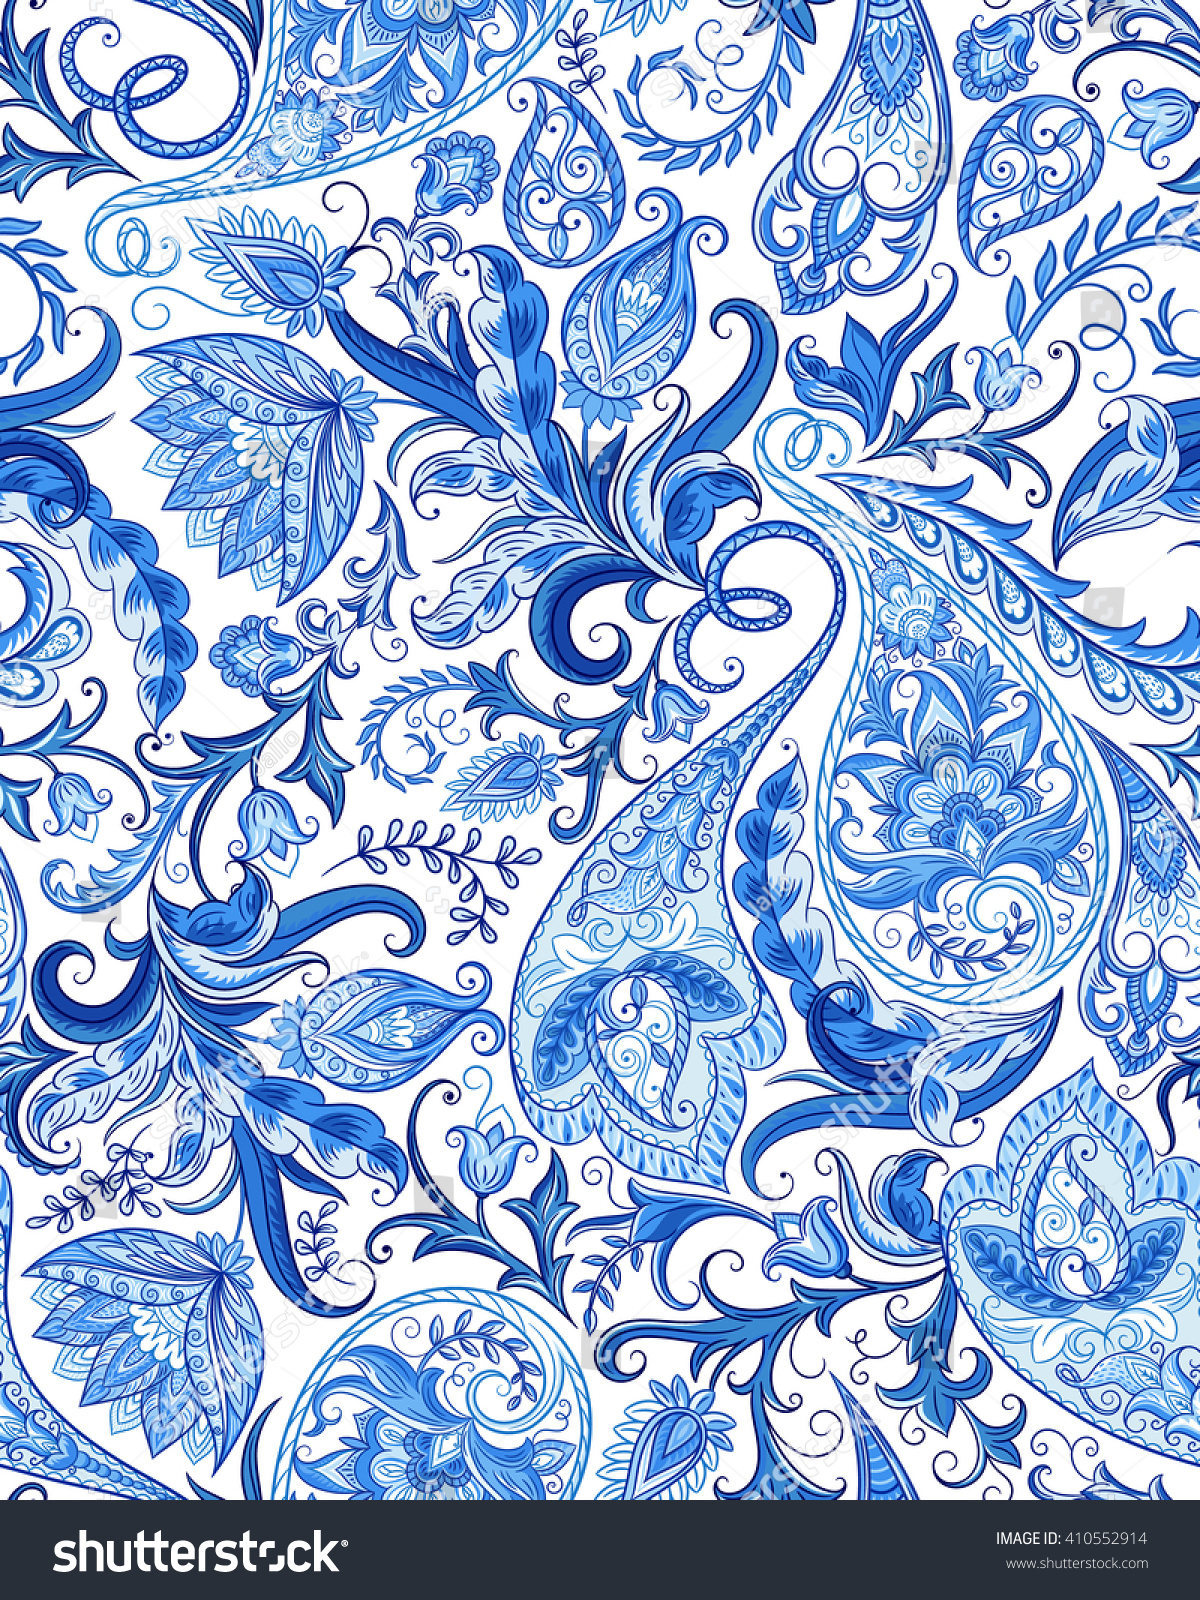 Vintage flowers seamless paisley pattern traditional stock for Carrelage motif retro